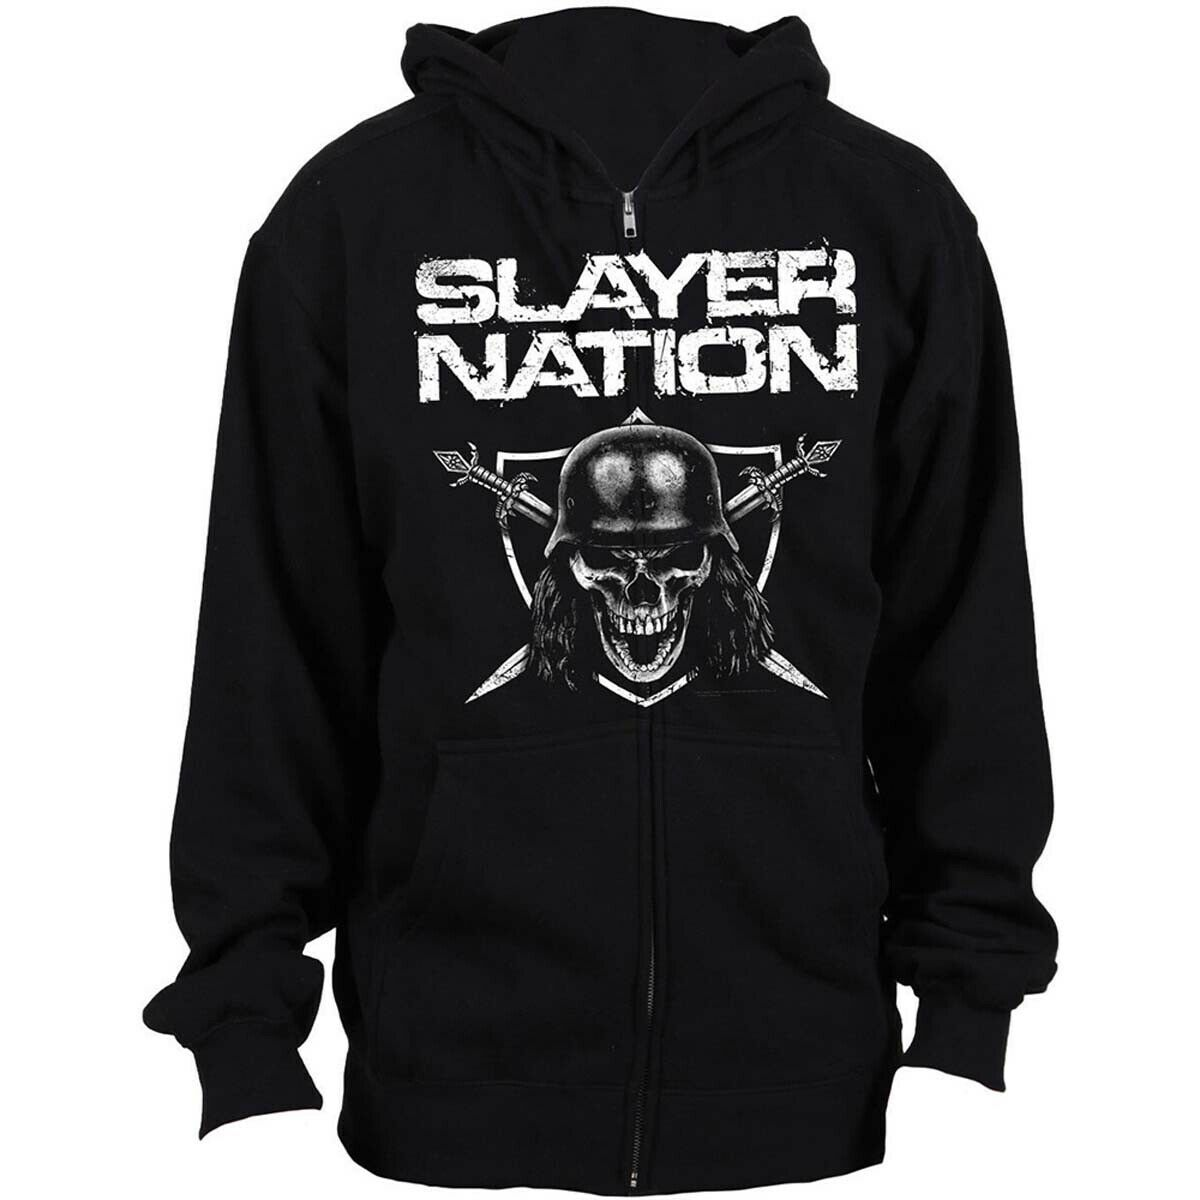 Slayer Nation Official Hoodie Hooded Top